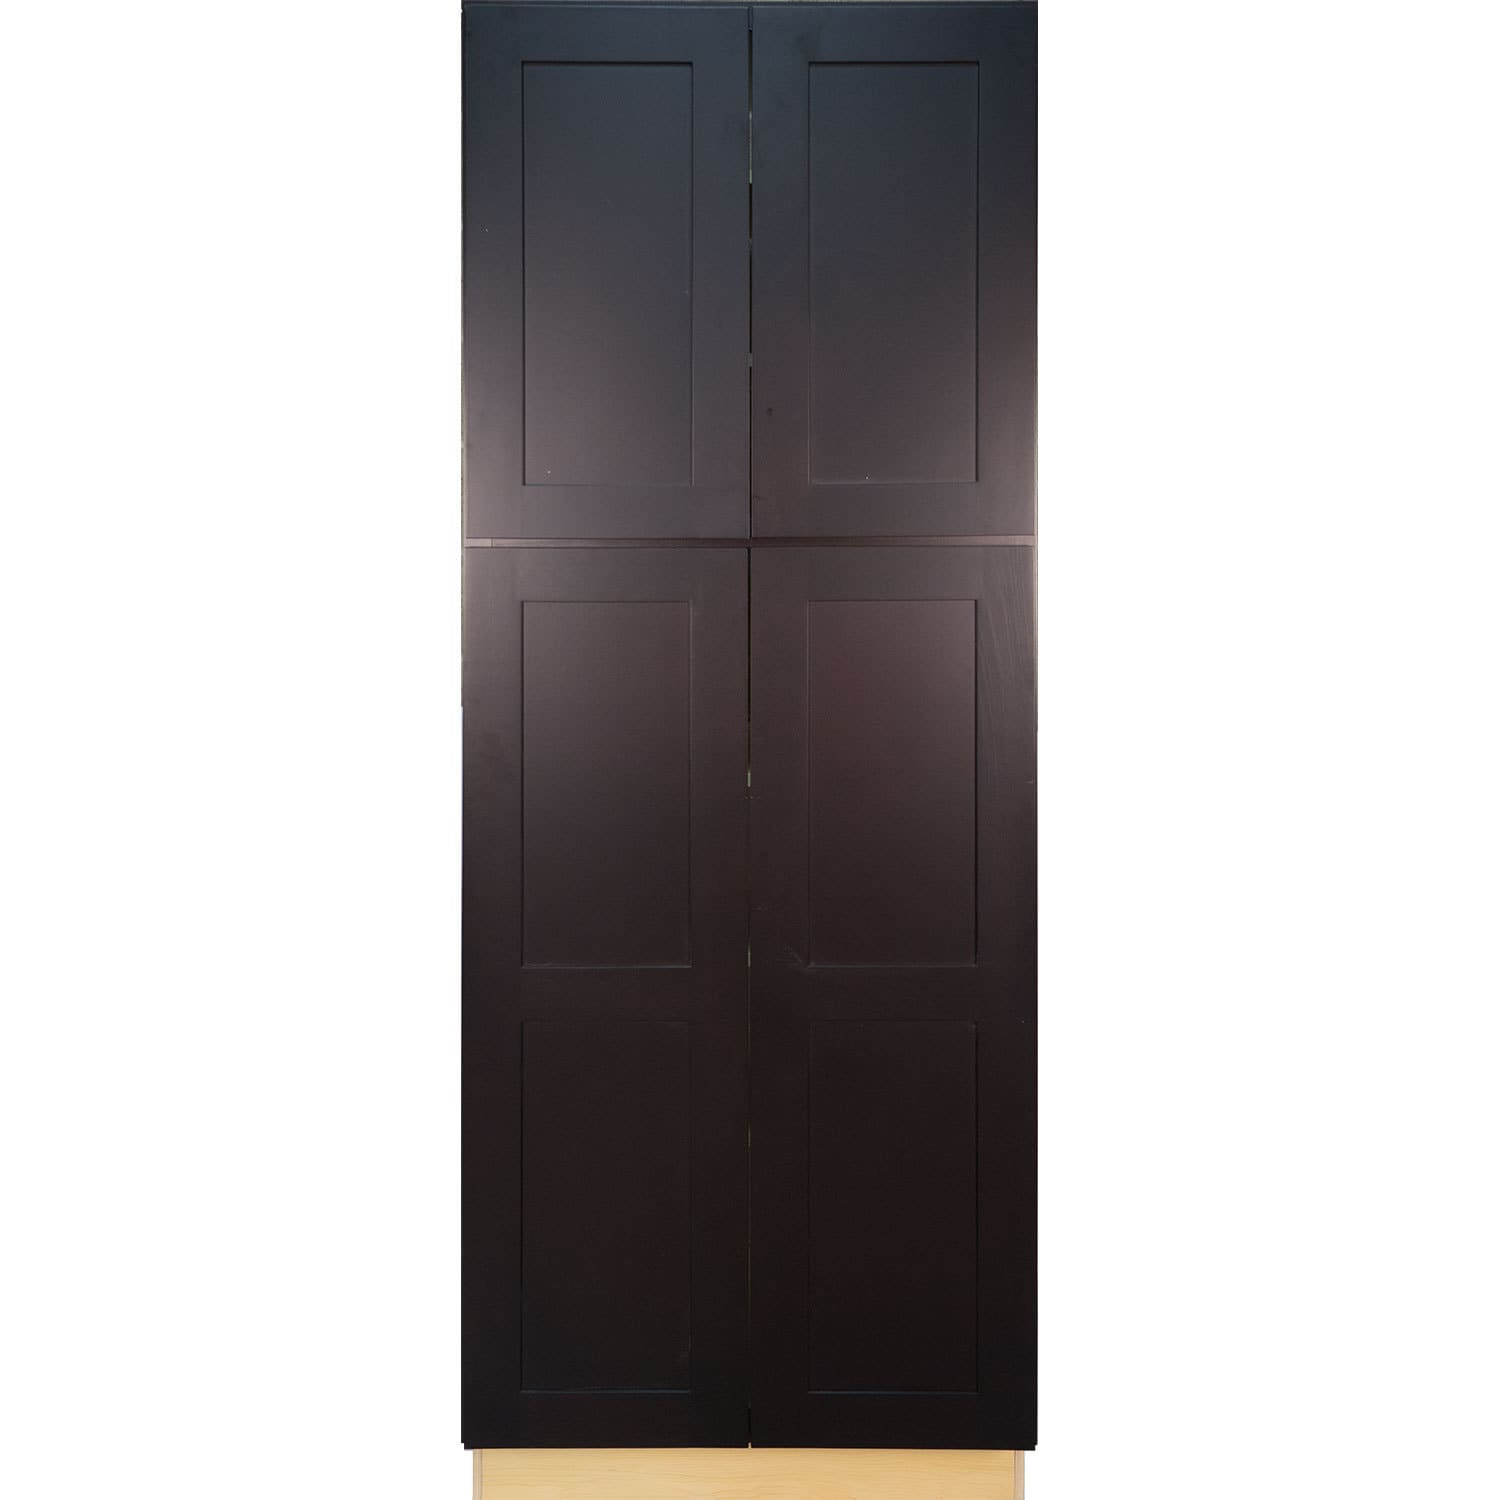 Everyday Cabinets Dark Espresso 24 Inch Shaker Pantry Utility Kitchen Cabinet Free Shipping Today 12303540